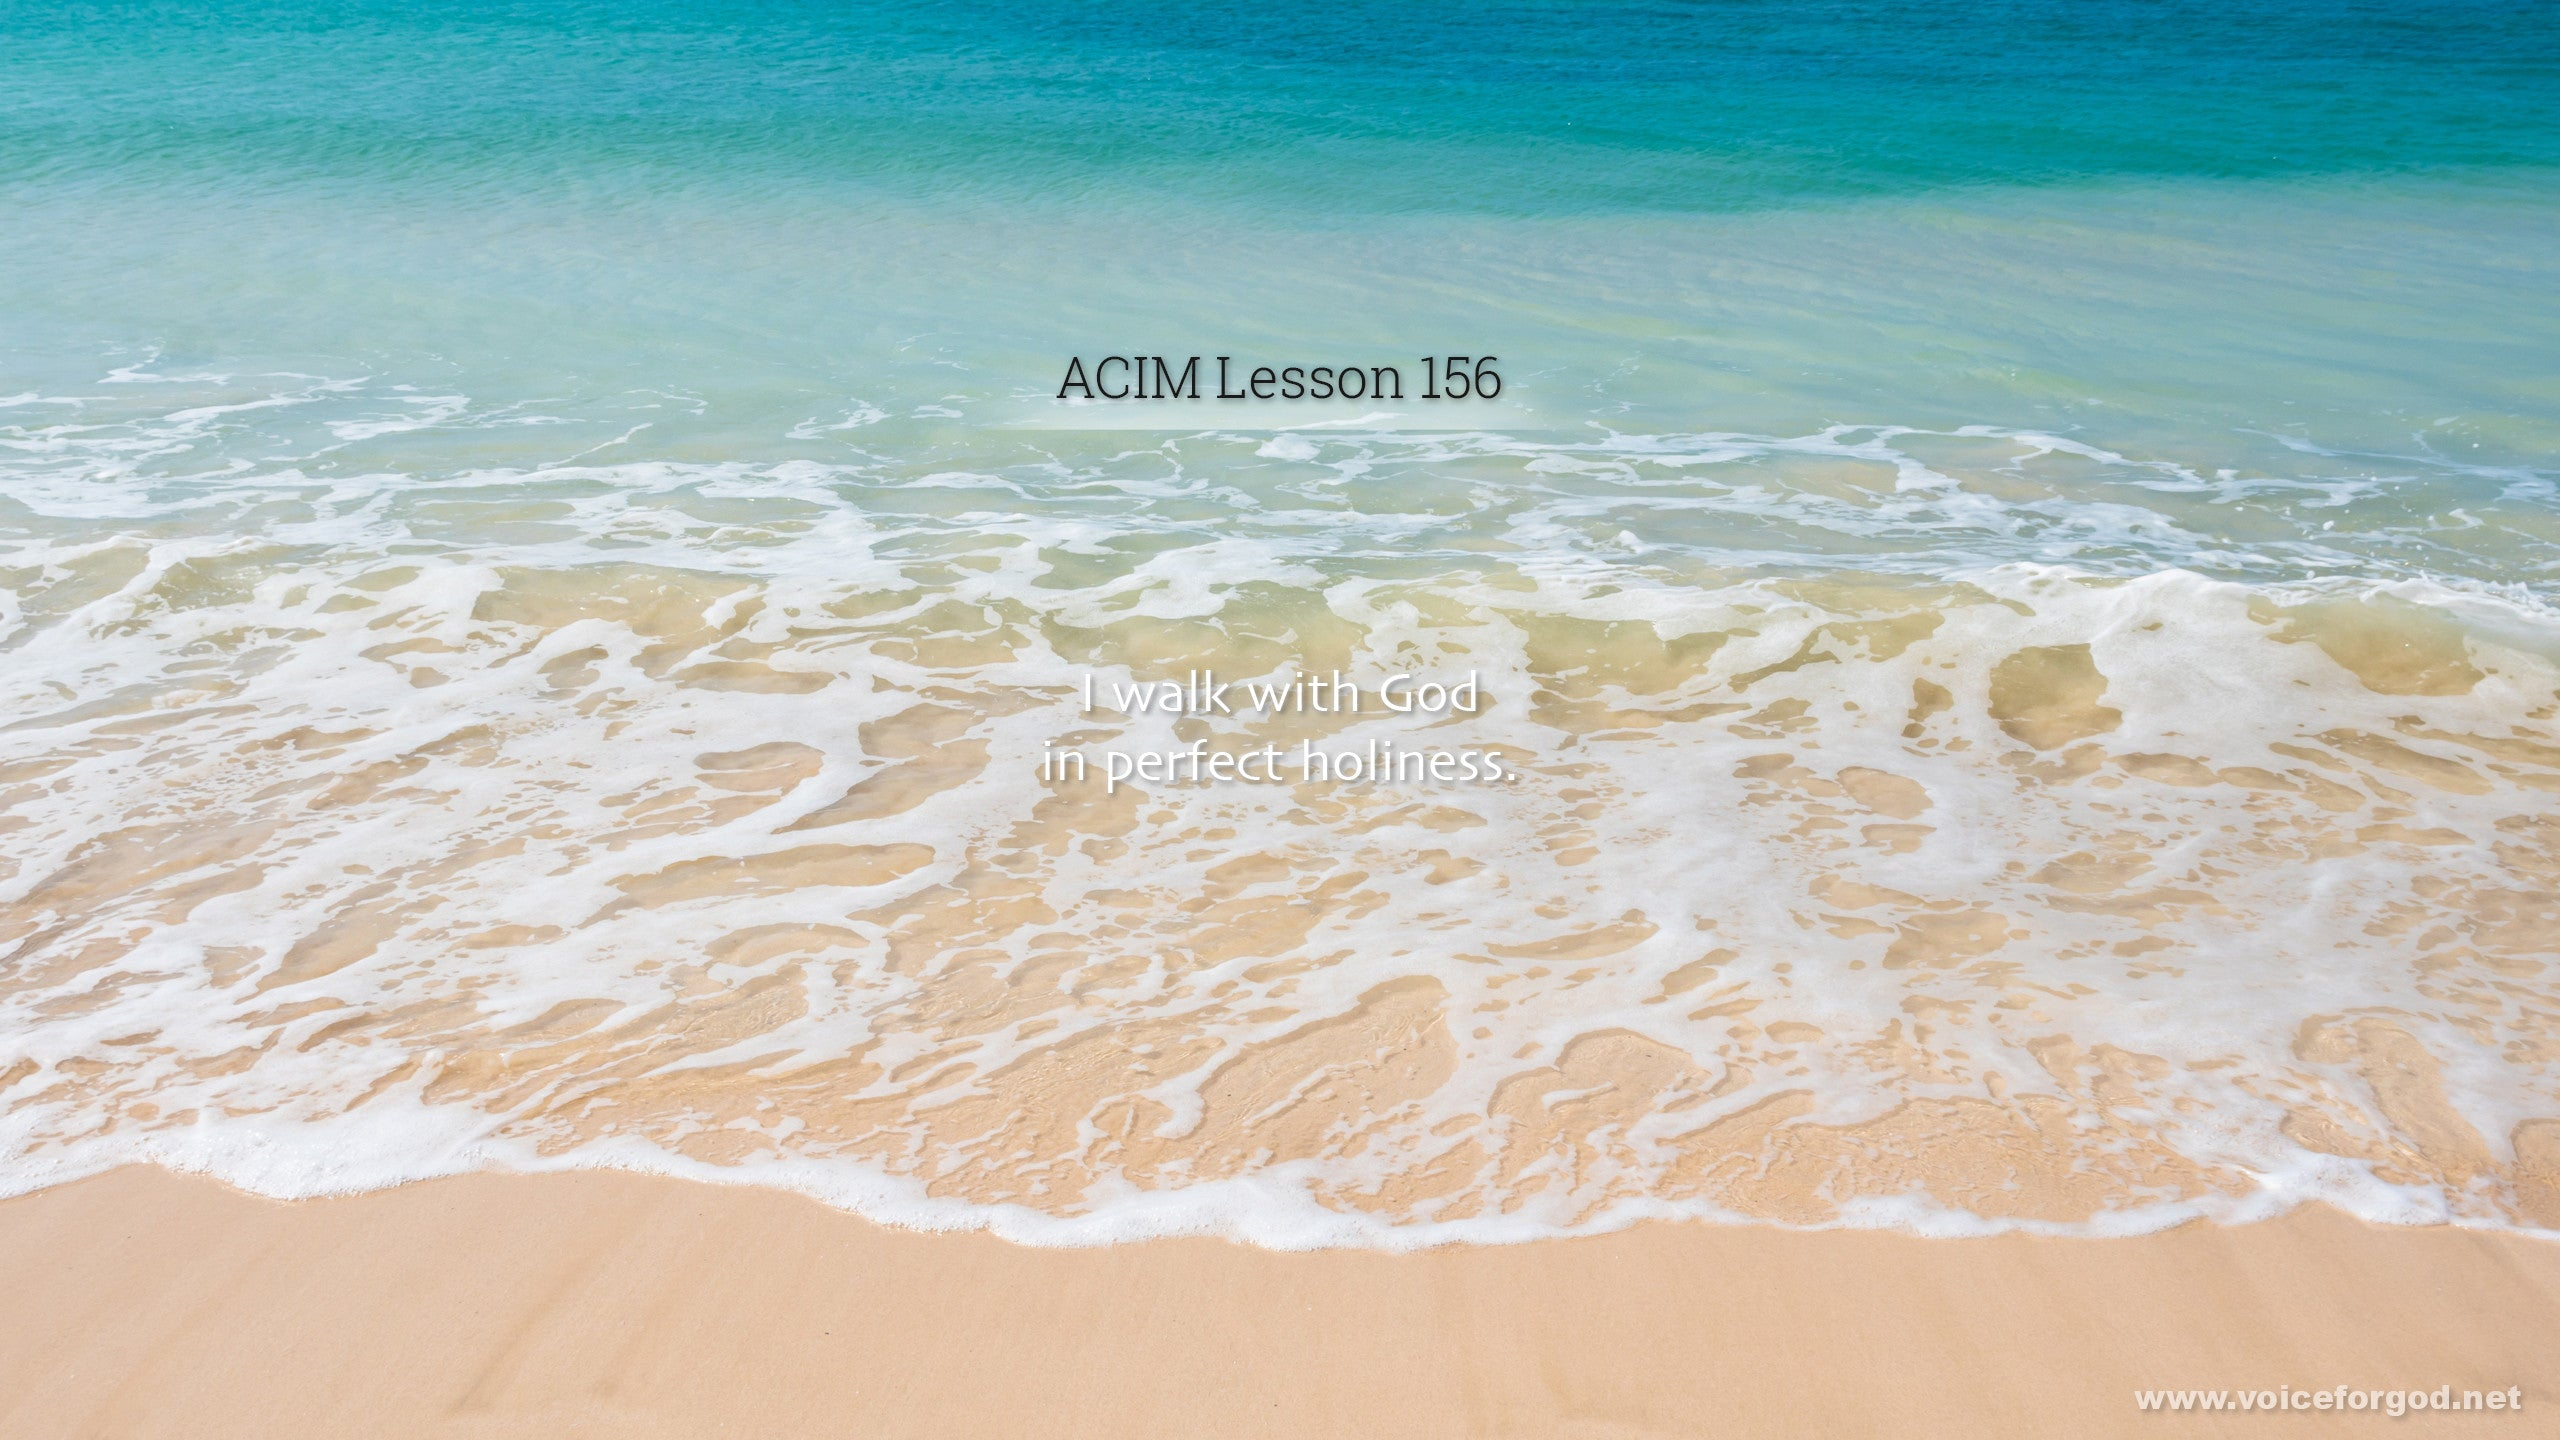 ACIM Lesson 156 - A Course in Miracles Workbook Lesson 156